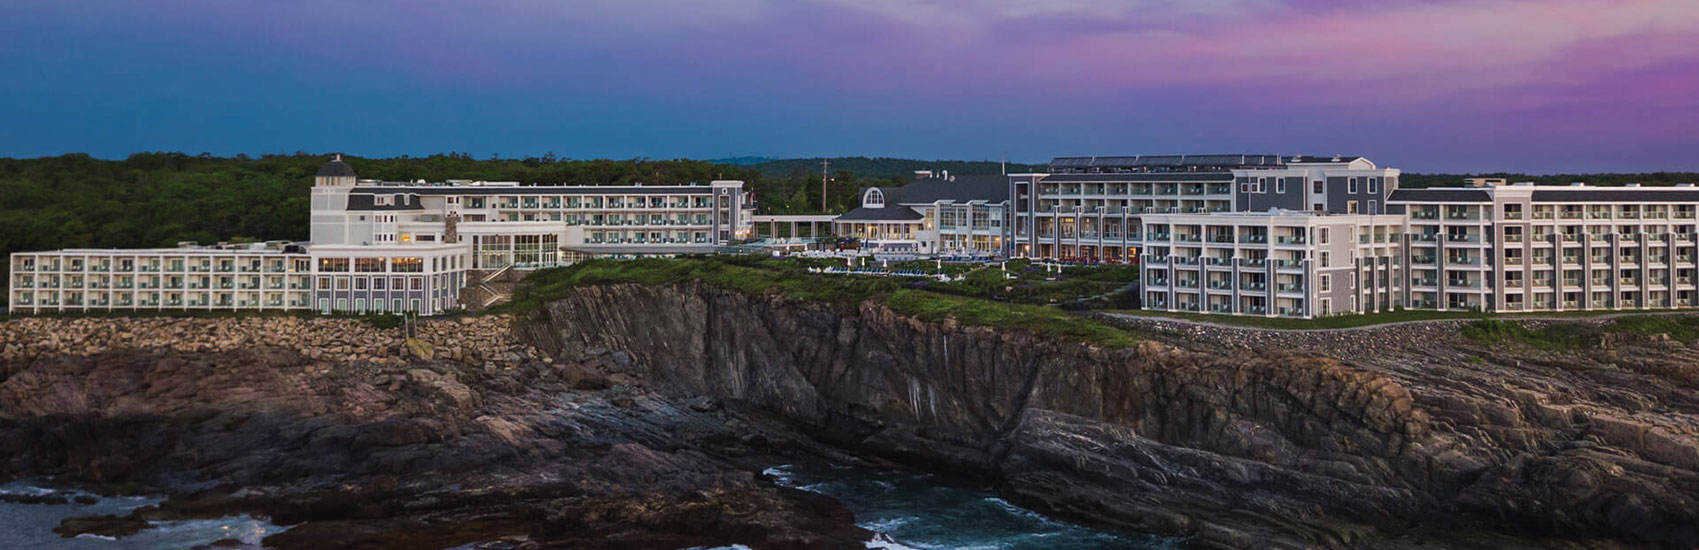 Cliff House Maine 0